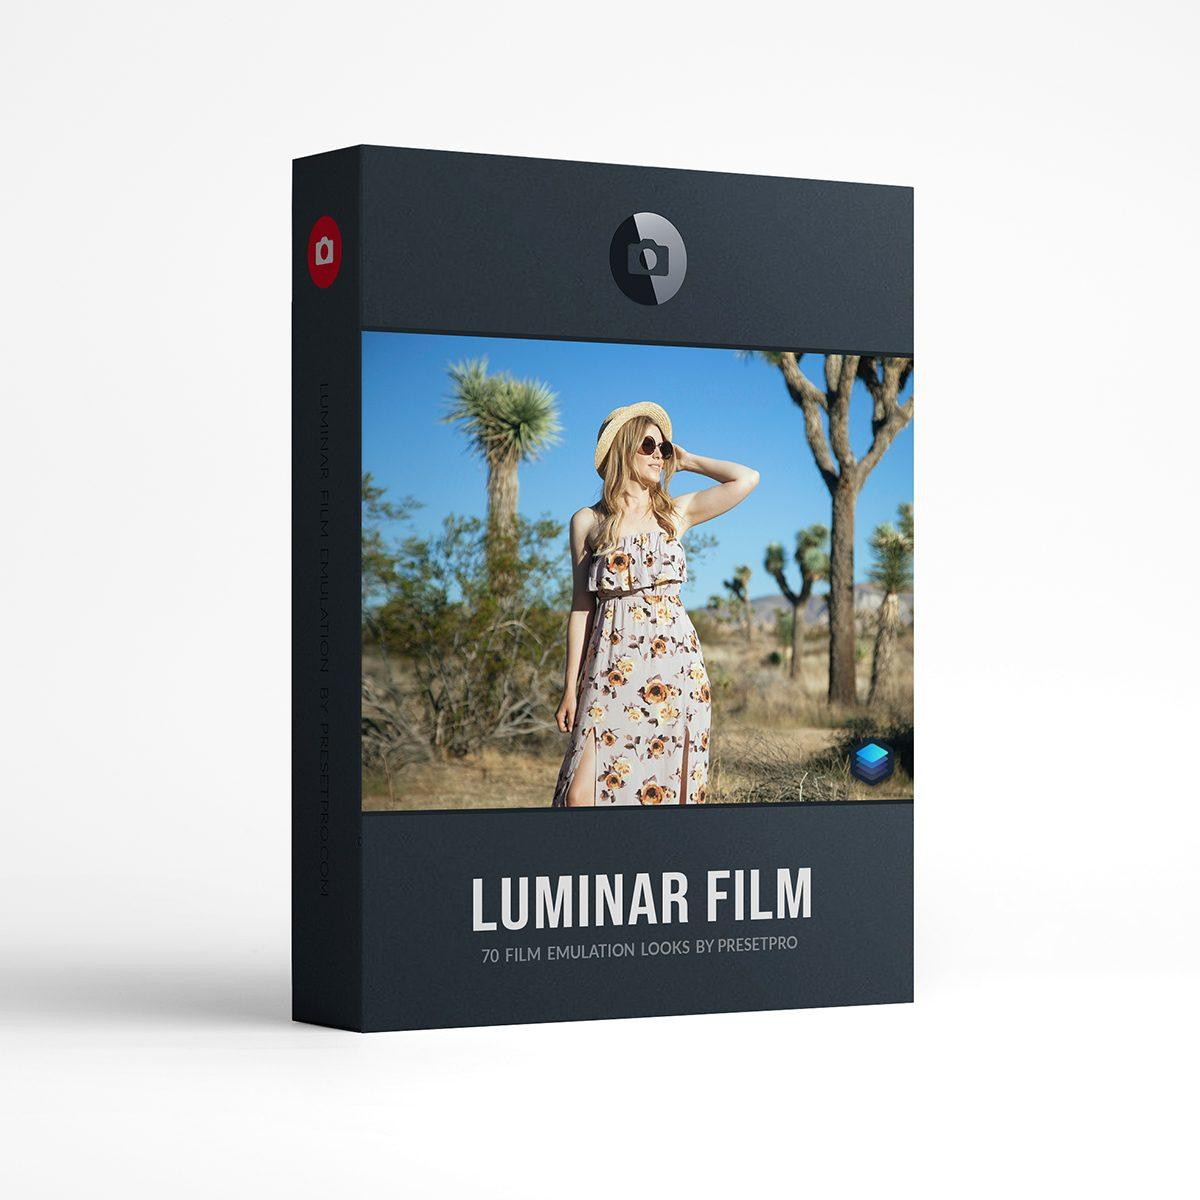 Luminar-Film-Emulation-Looks-by-Presetpro.com